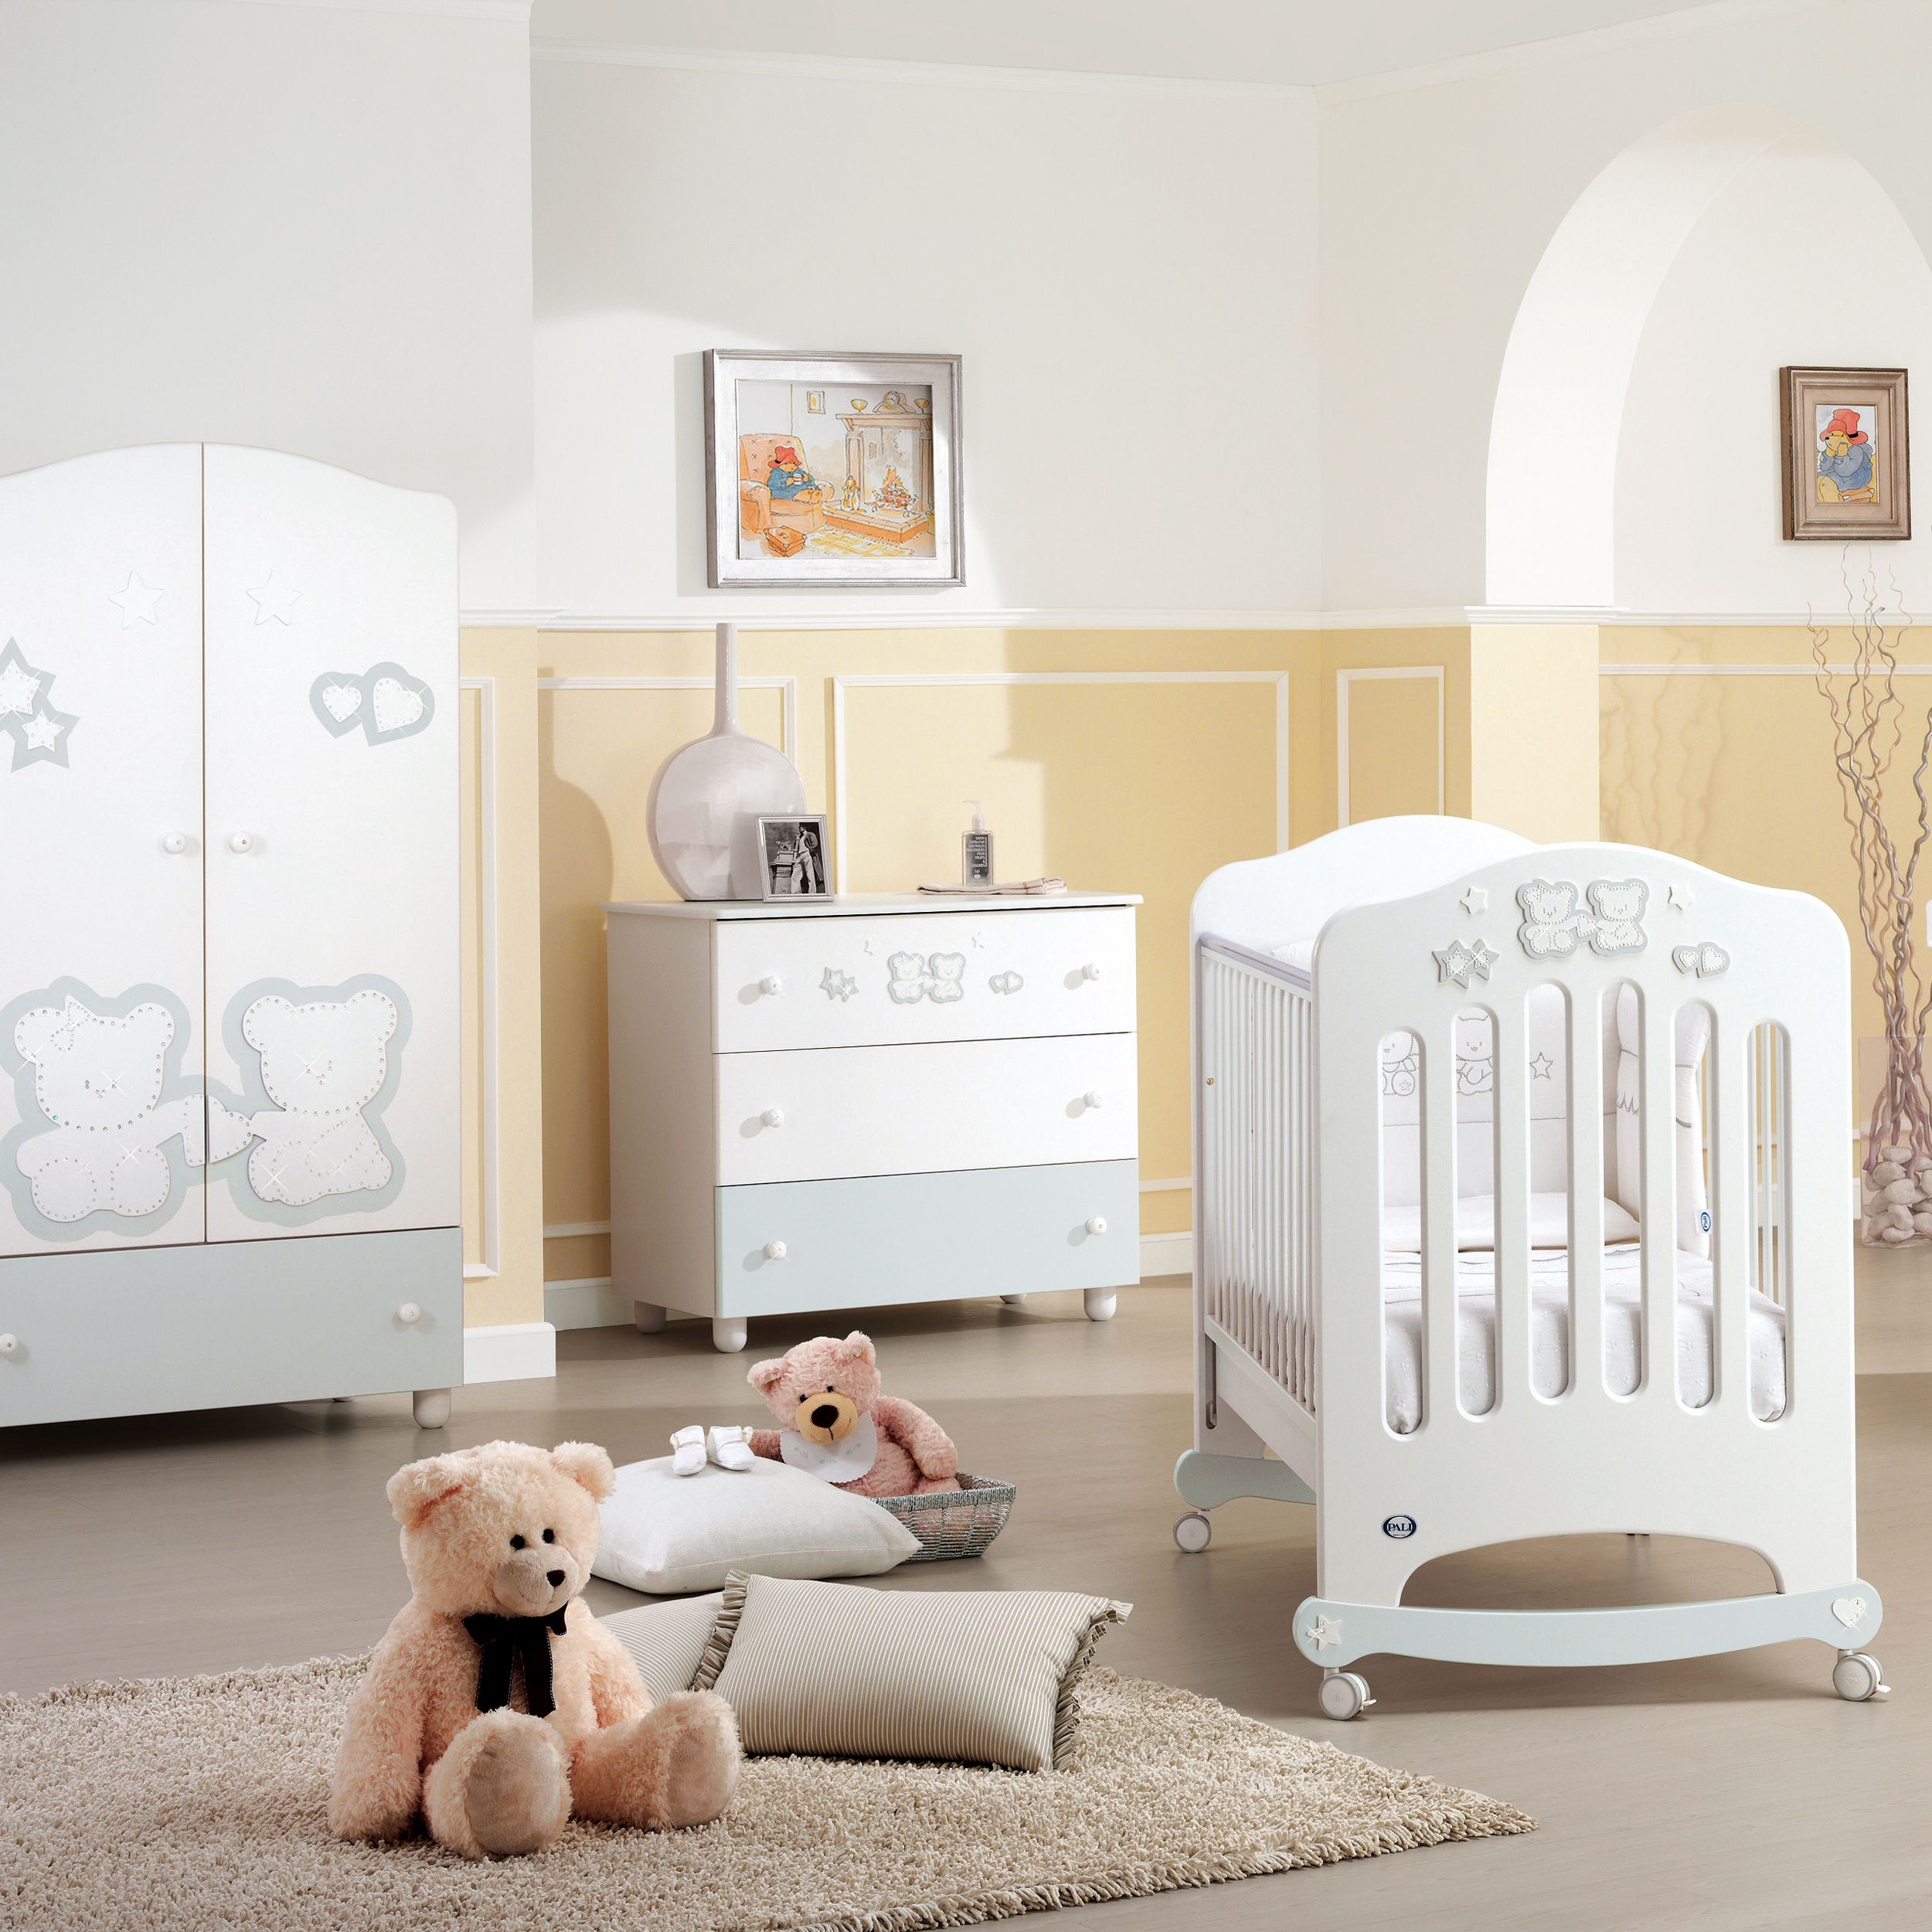 luxus babyzimmer prestige wei bei uns im baby online shop http pali. Black Bedroom Furniture Sets. Home Design Ideas